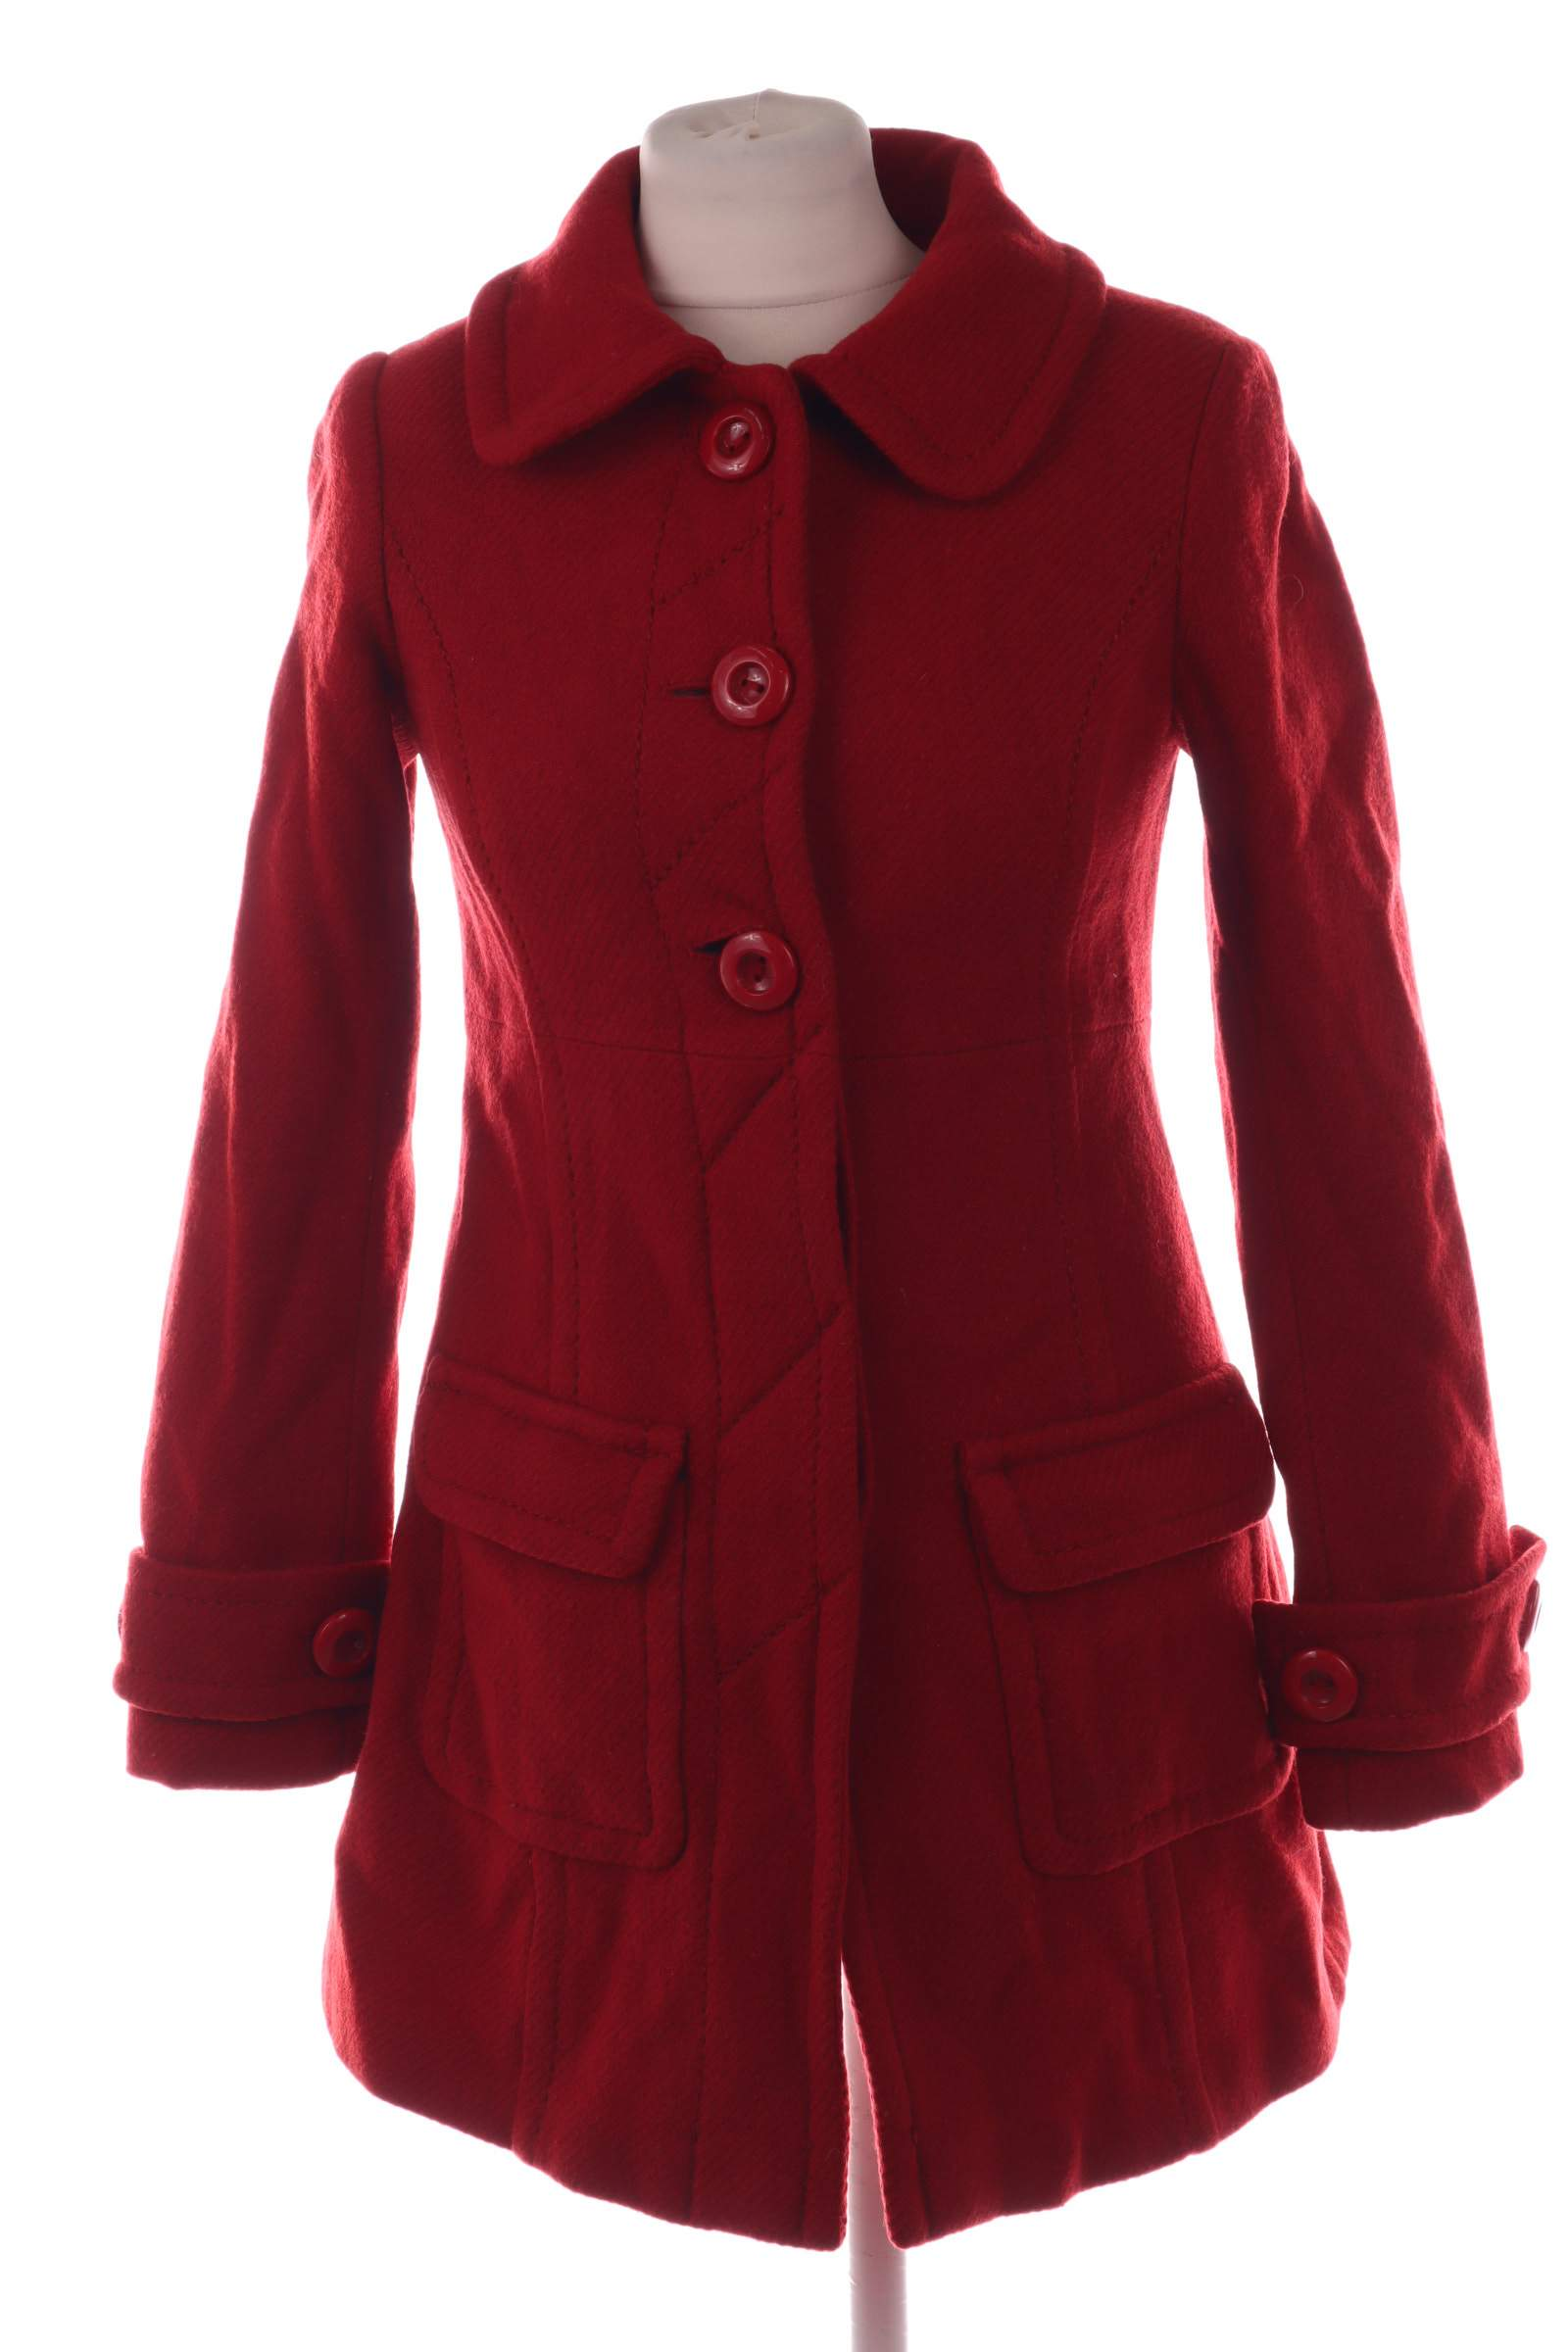 Divided Red Coat - upty.store